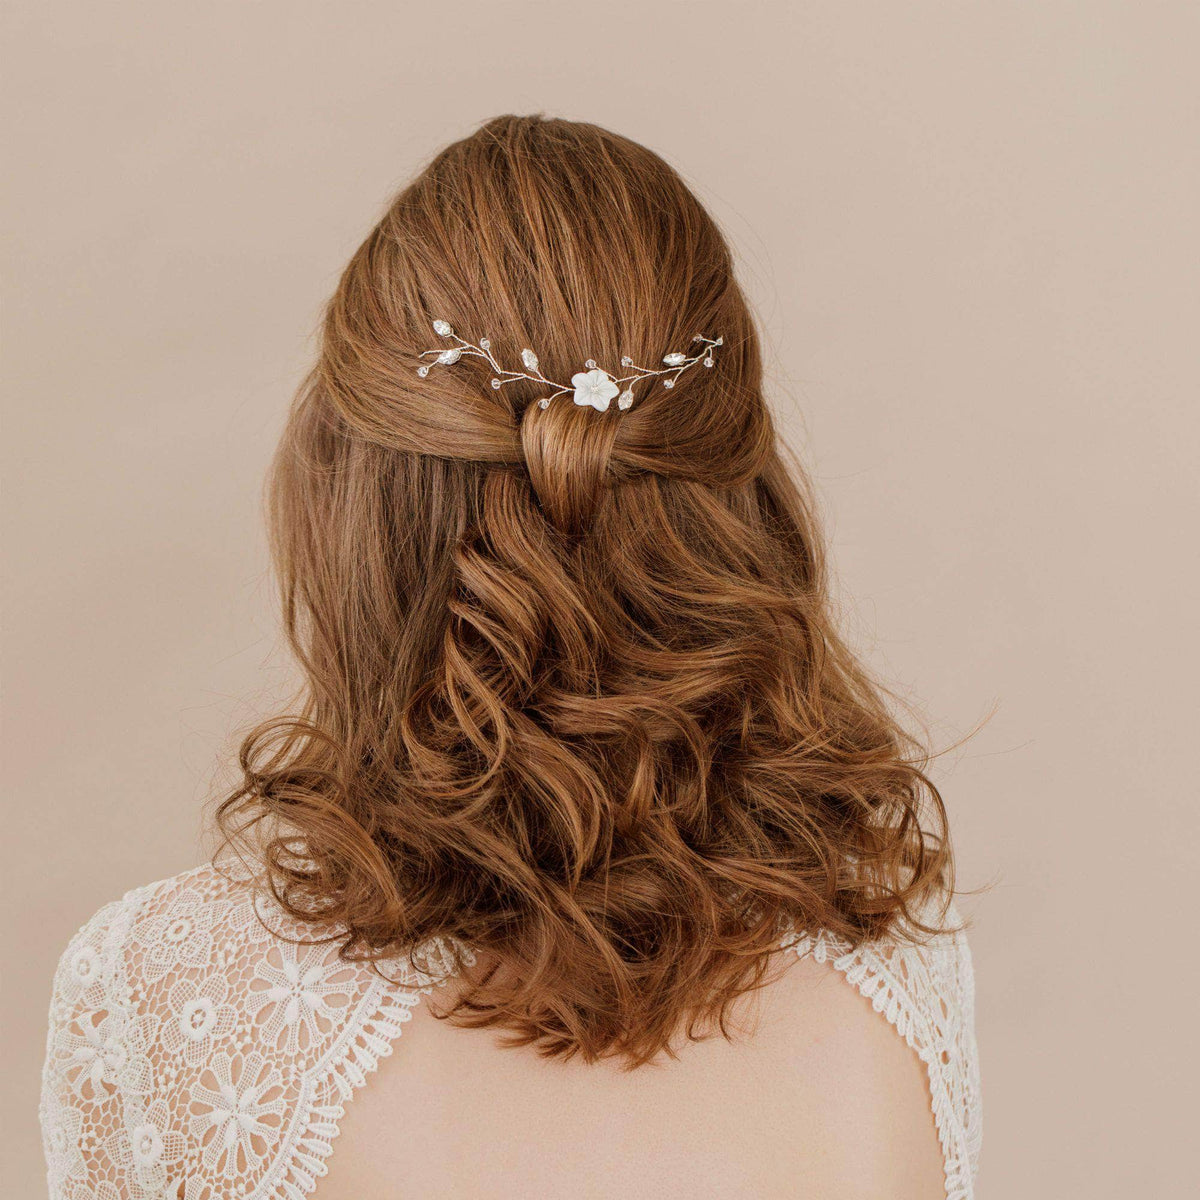 Wedding Hairvine Gold floral medium length hair vine - 'Jaime'